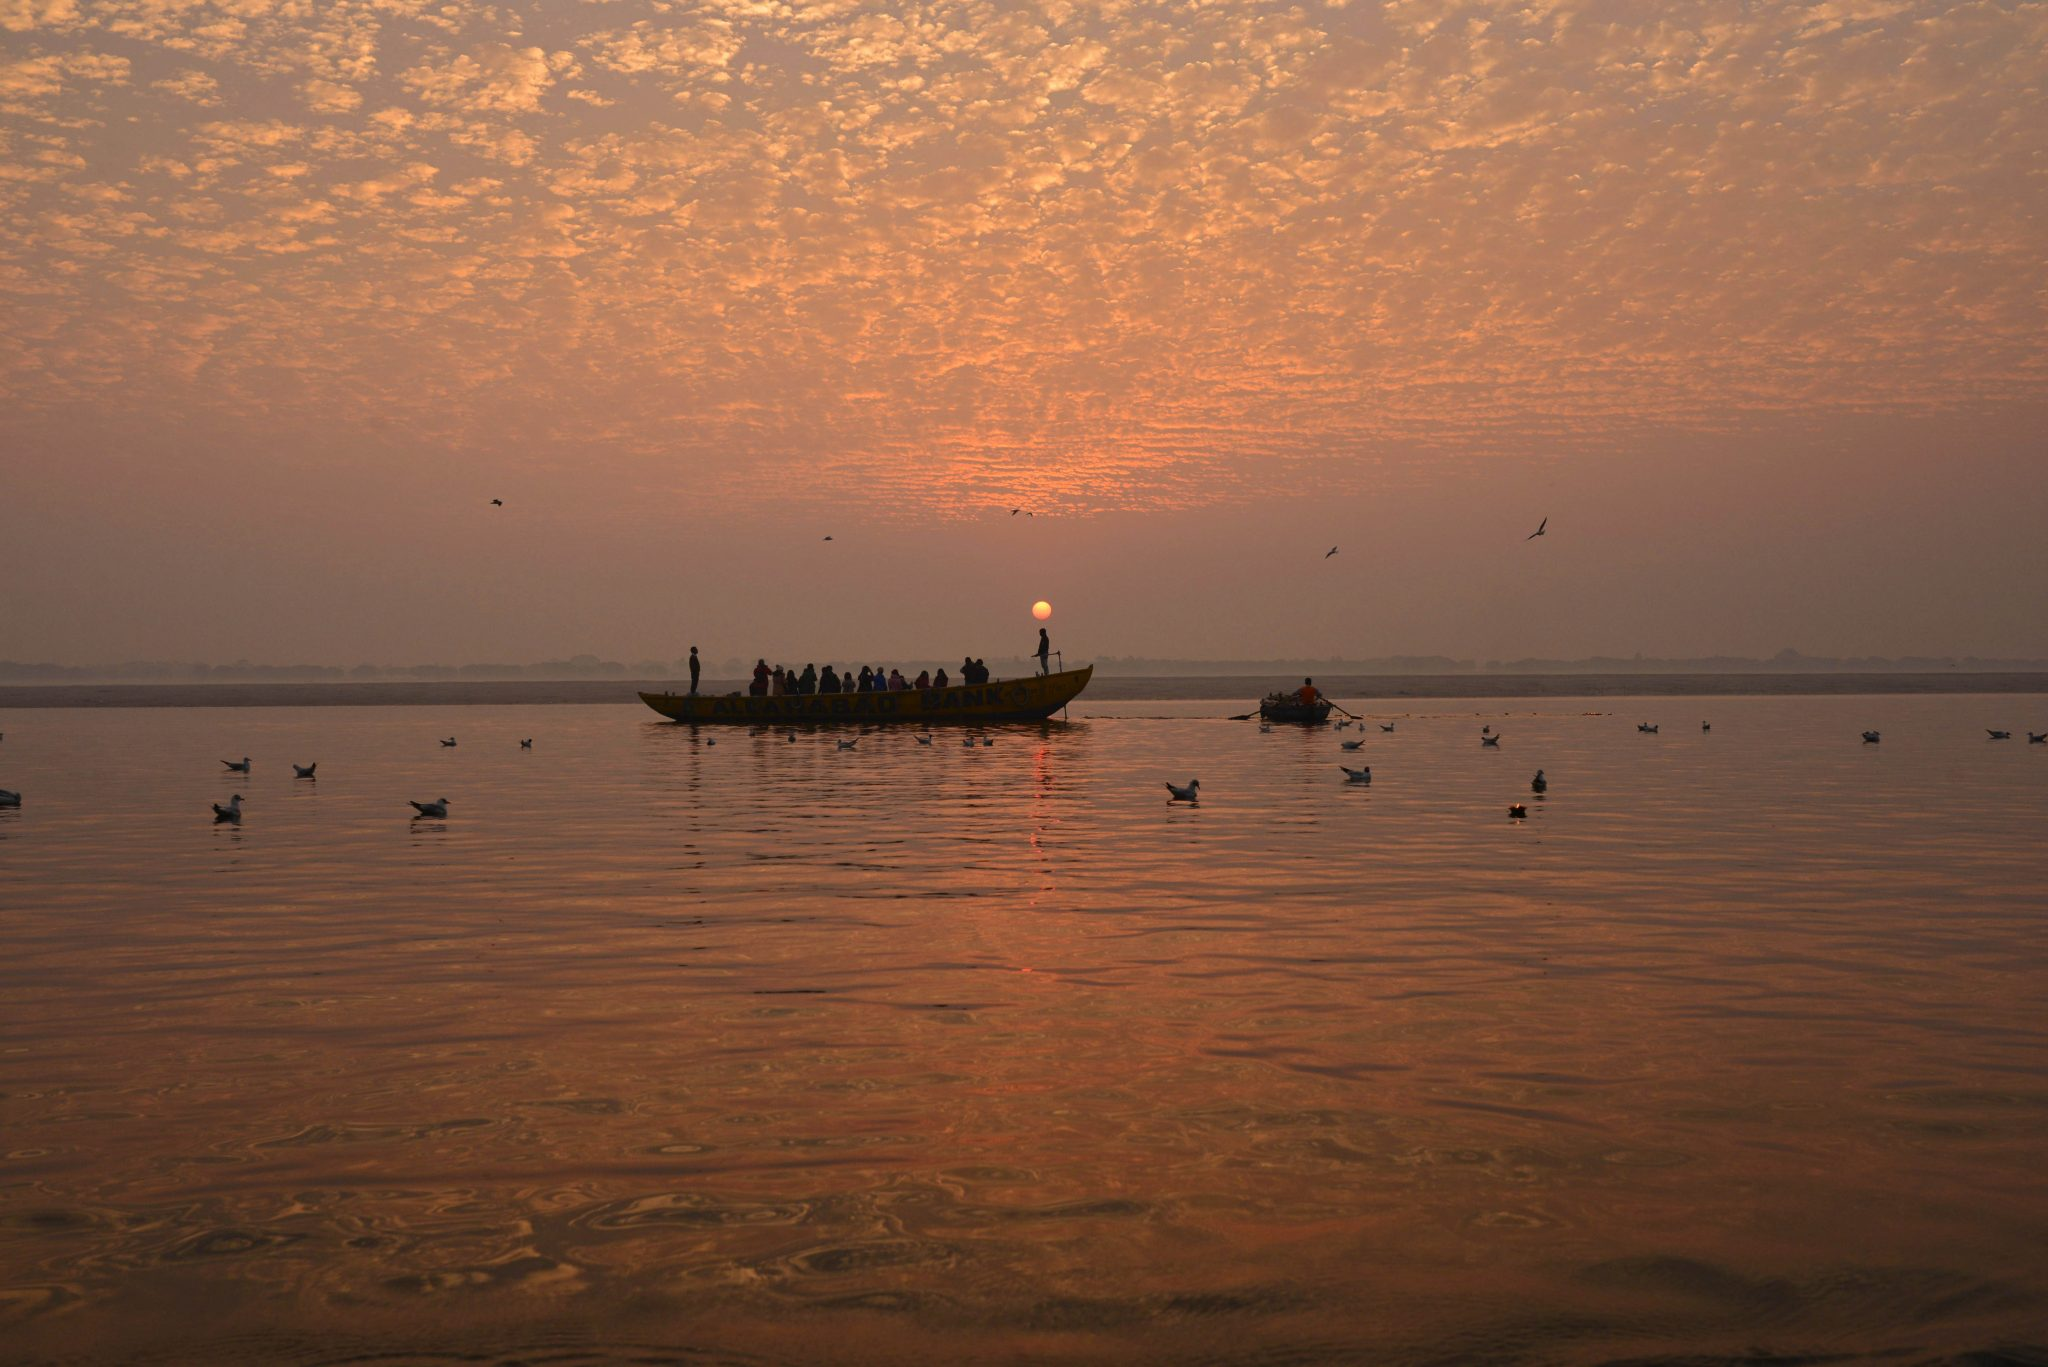 A blood red sun rising over the Ganges